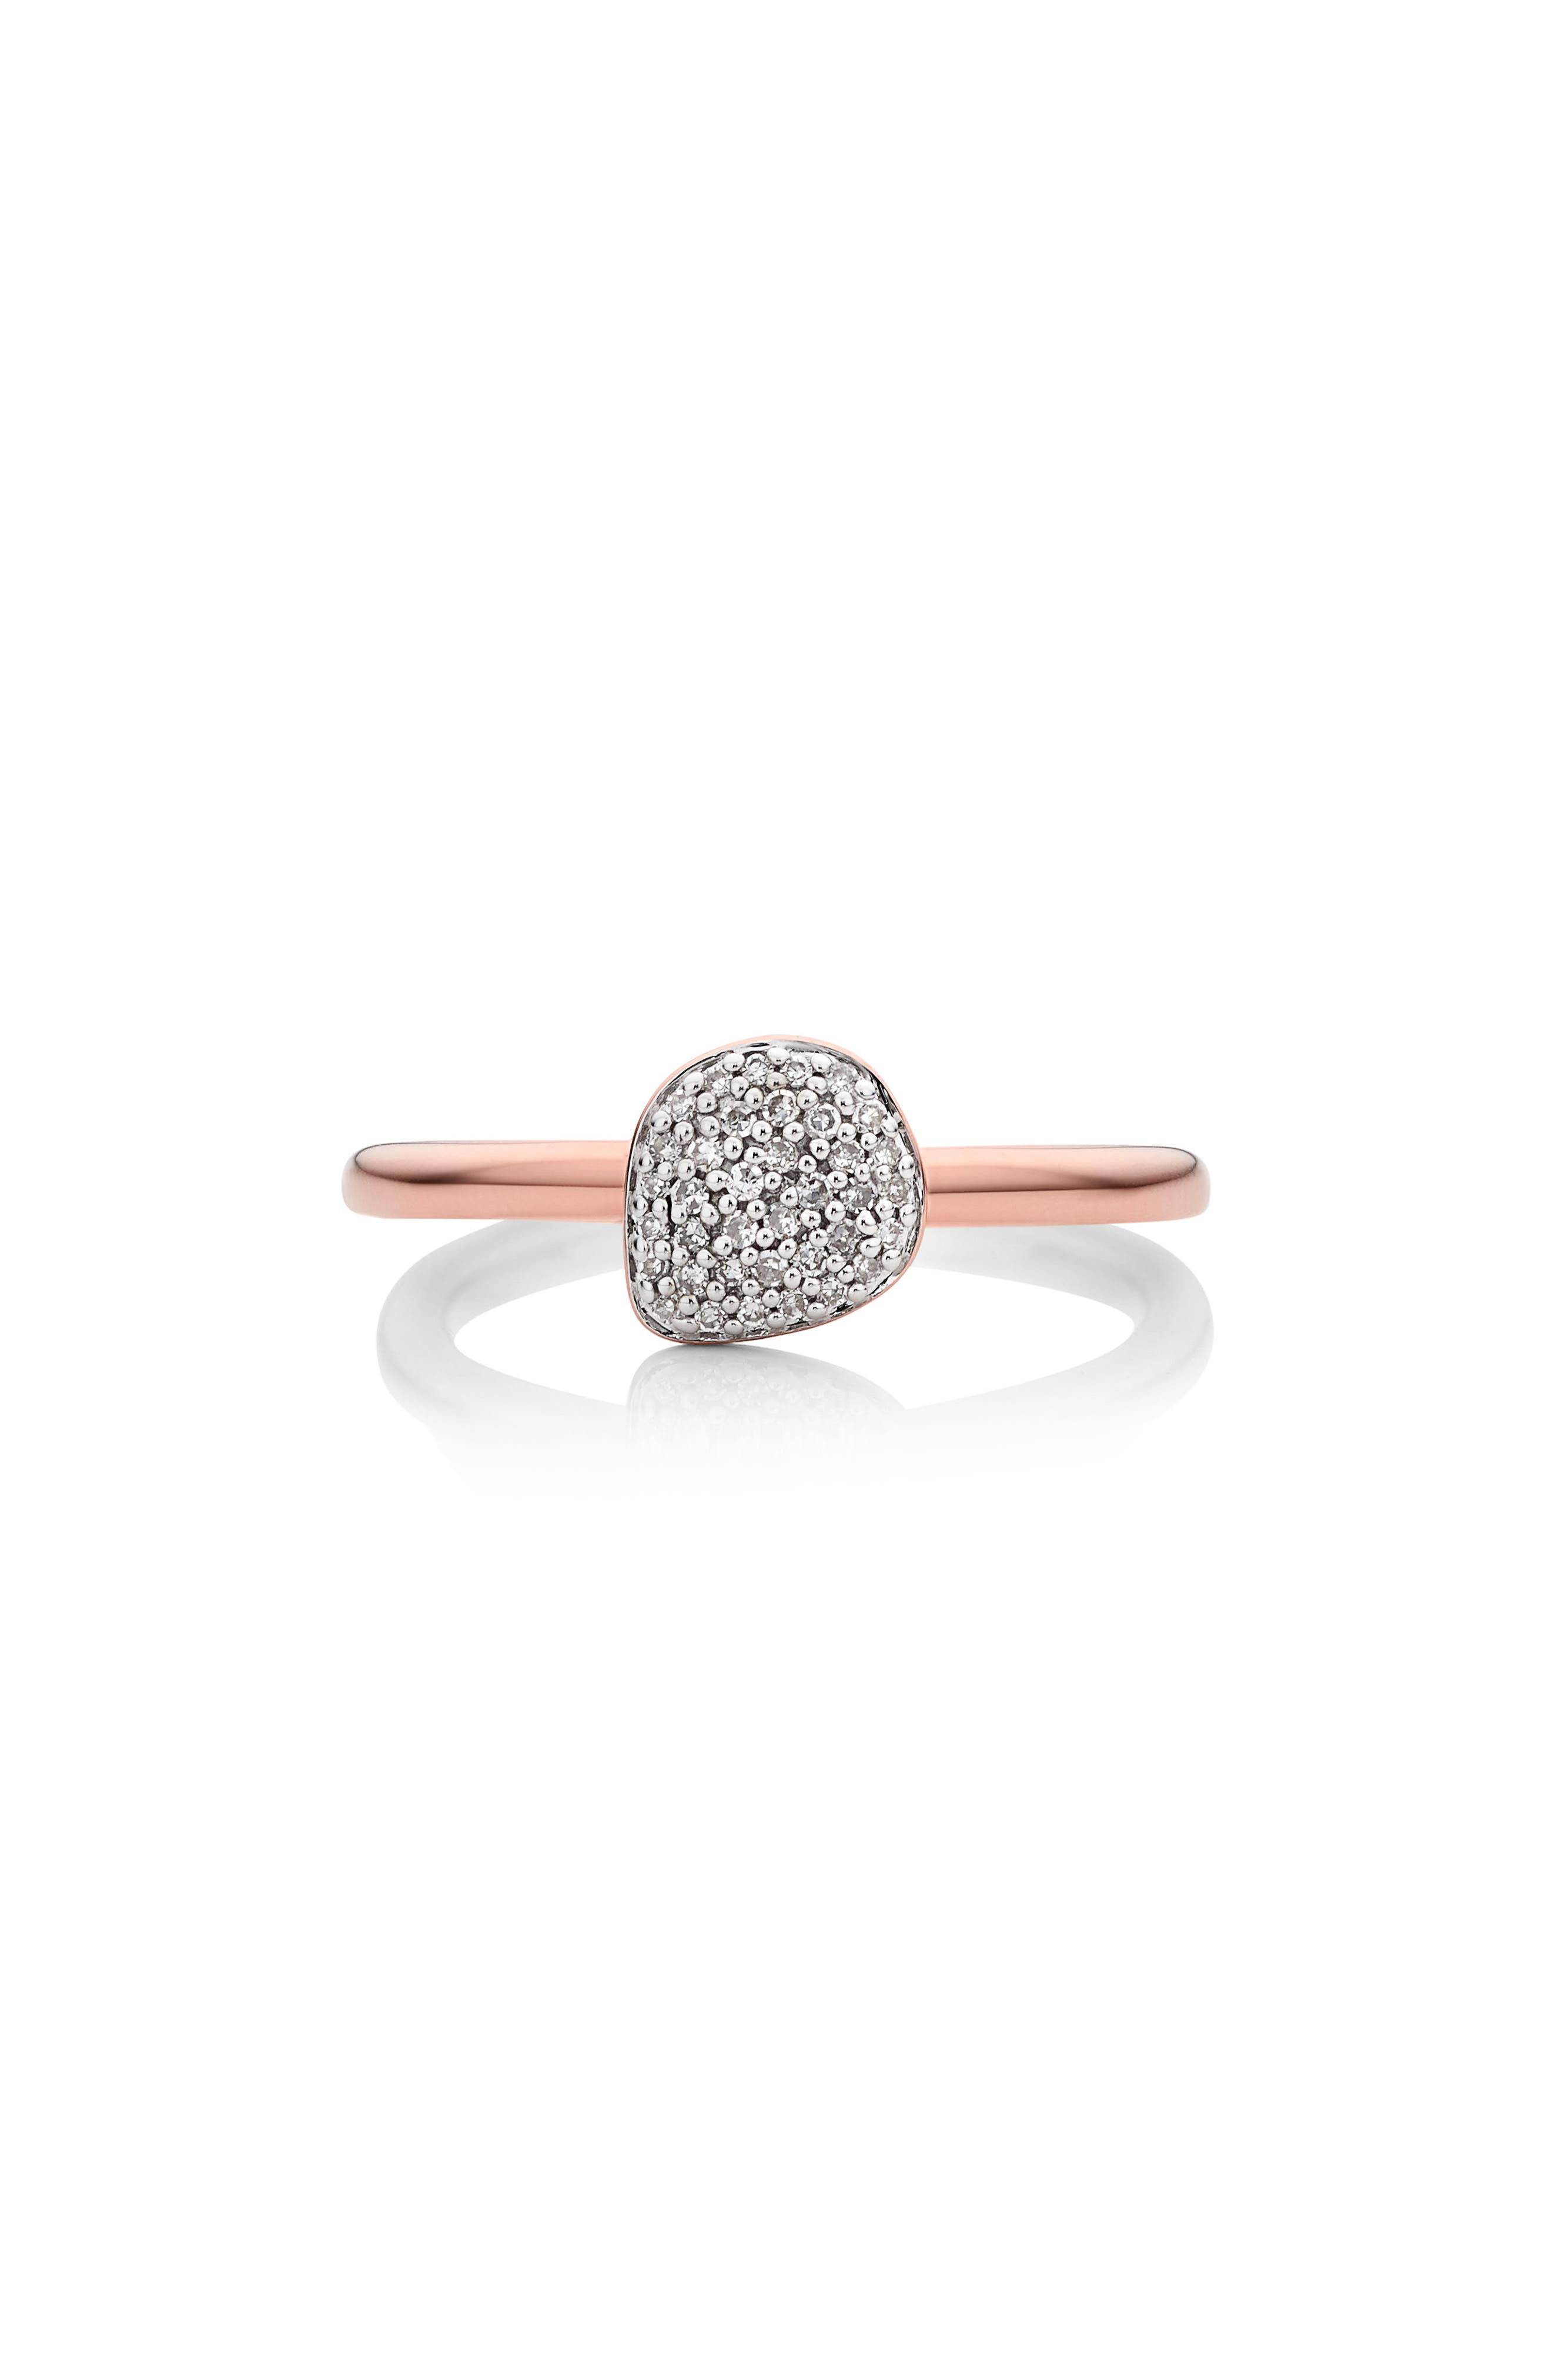 Nura Mini Diamond Pavé Pebble Stacking Ring,                             Main thumbnail 1, color,                             ROSE GOLD/ DIAMOND